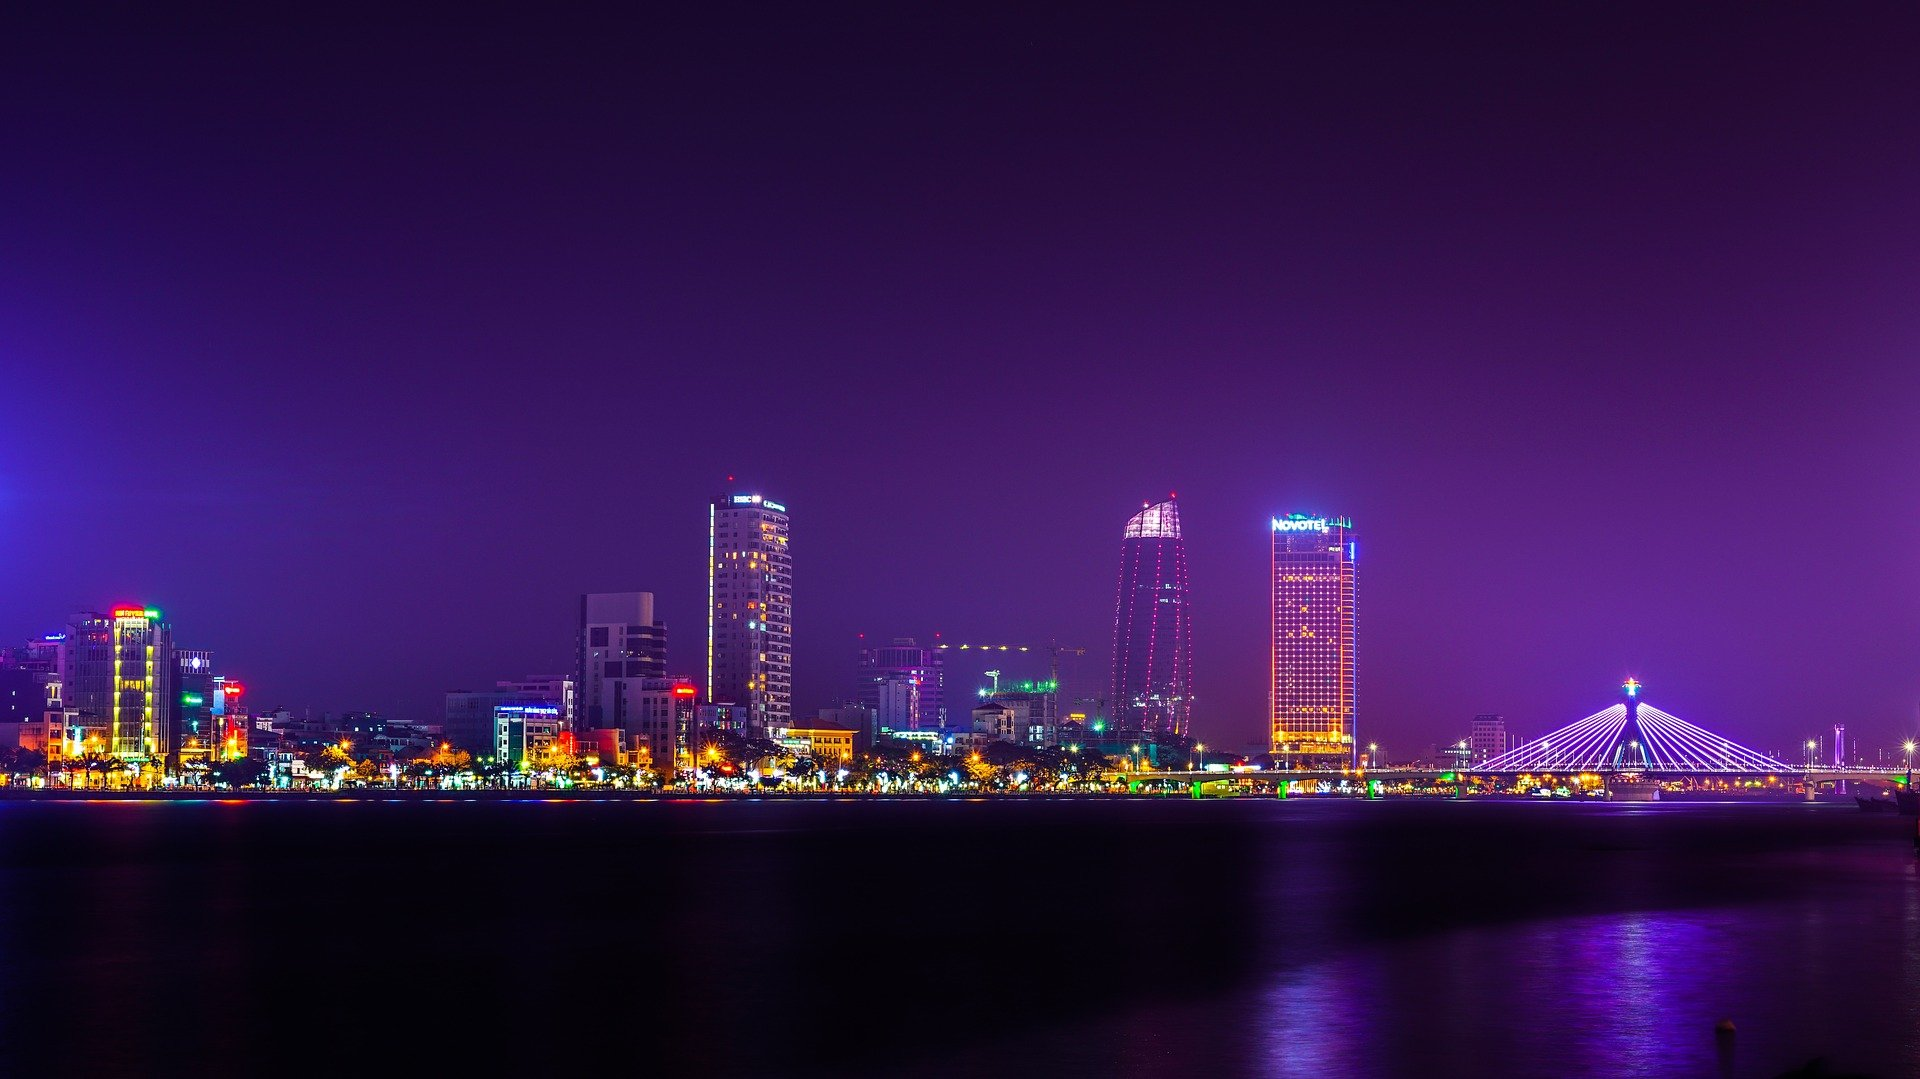 Da Nang city at night